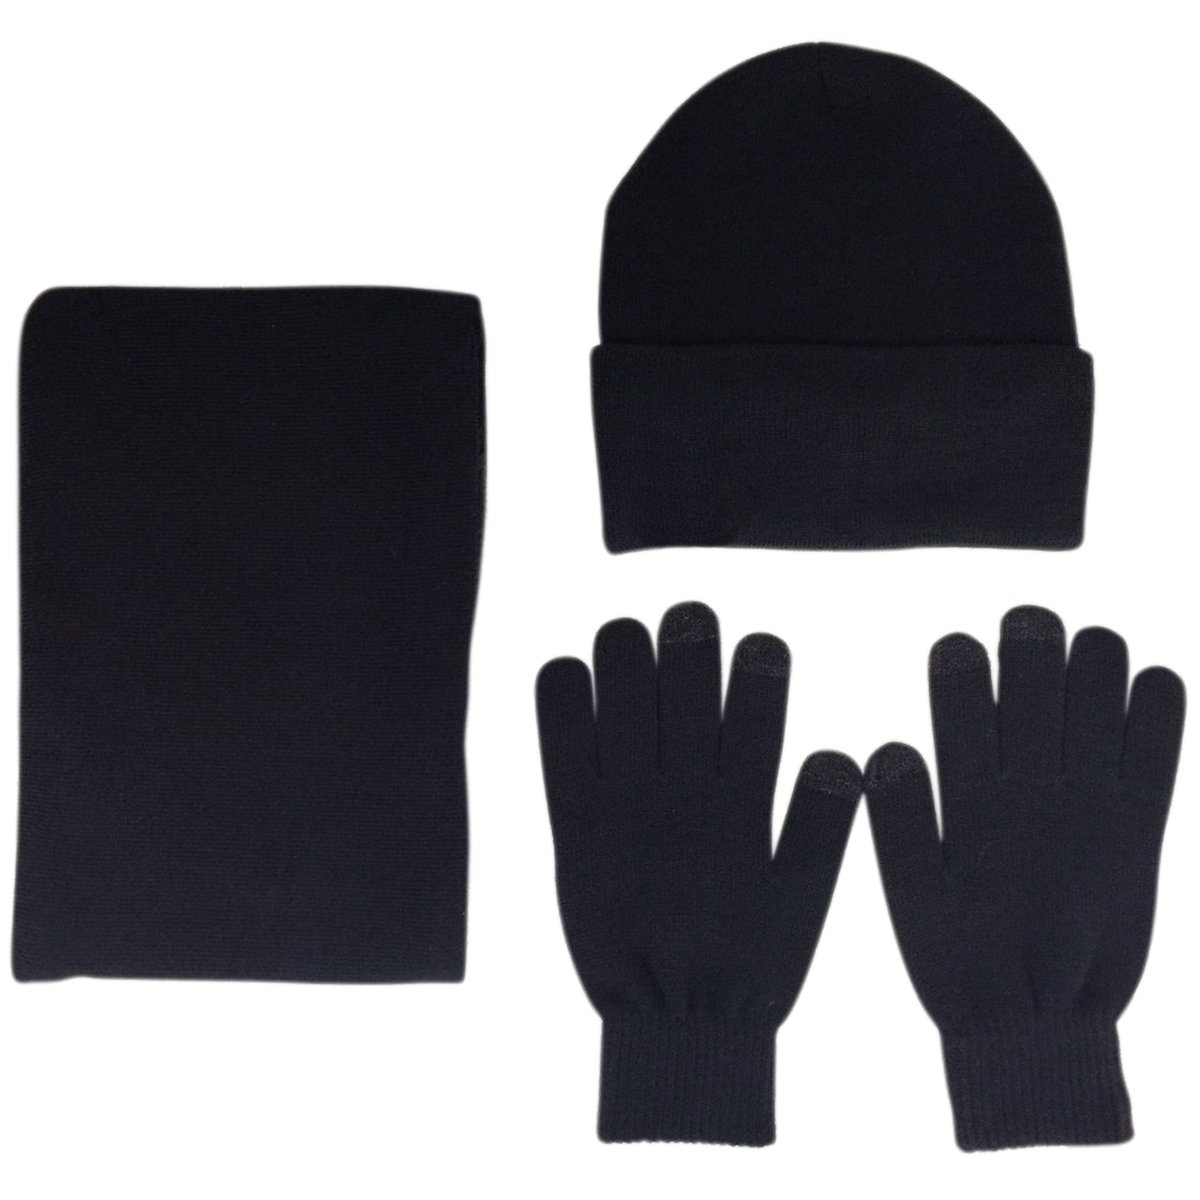 81a3d489d99 Top1  JOYEBUY Men 3 PCS Knitted Set Winter Warm Knit Hat + Scarf + Touch  Screen Gloves. Wholesale Price 12.99. Material  Made of thicker knitting  wool.